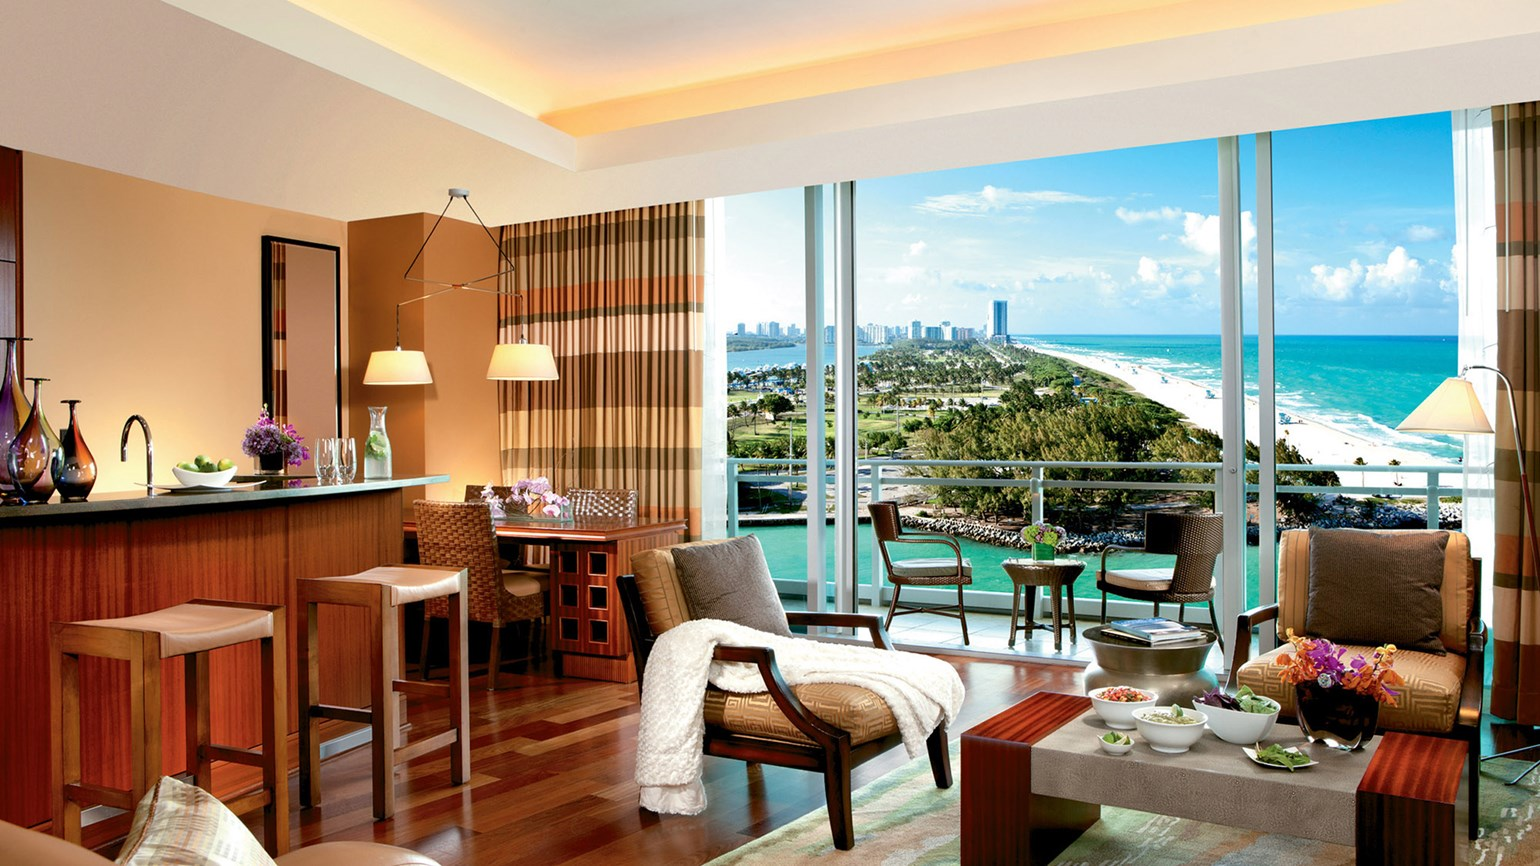 Luxury defined at the Ritz-Carlton Bal Harbour